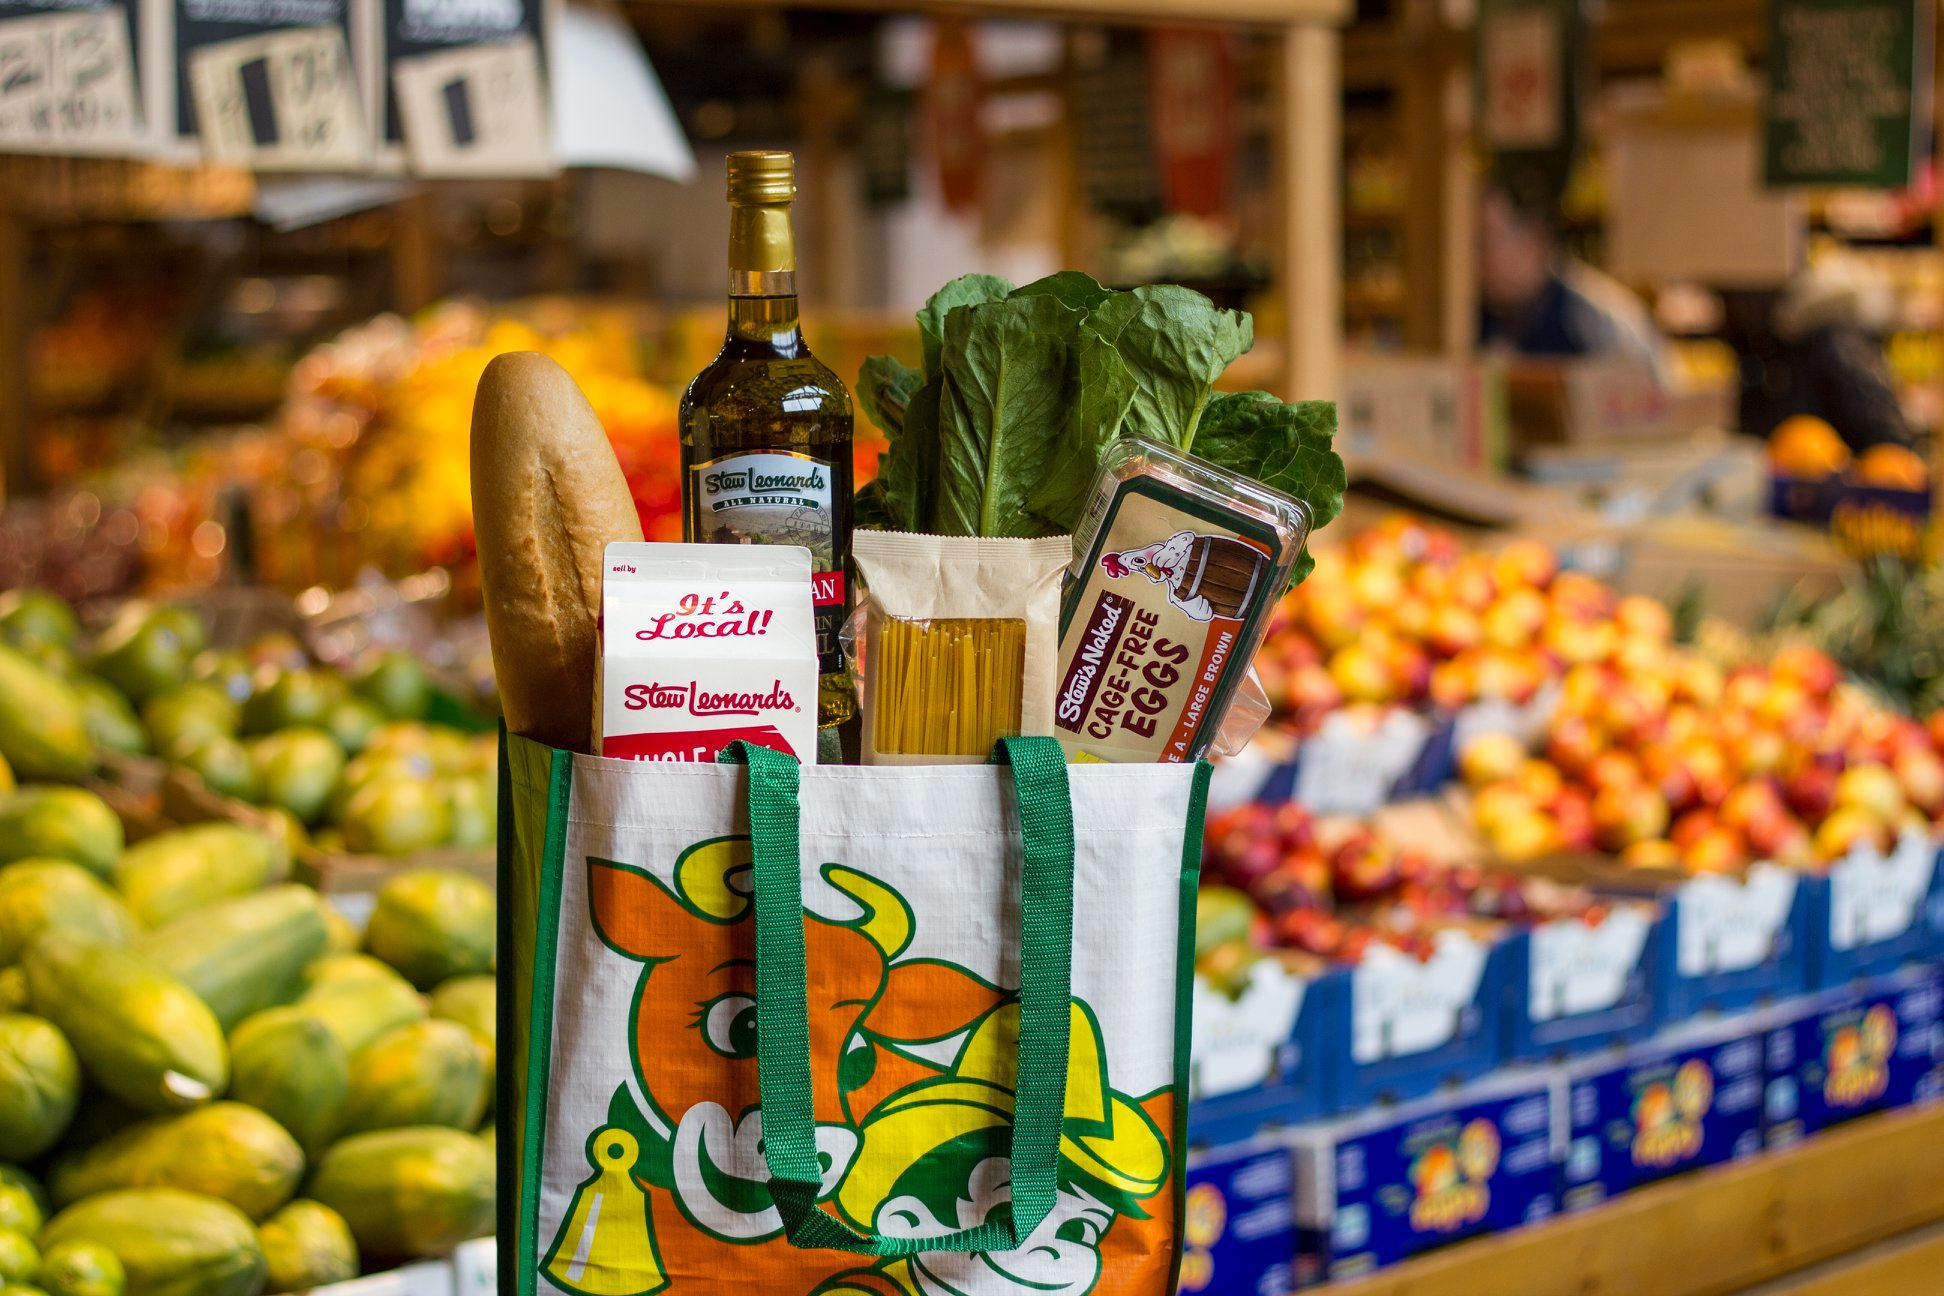 A grocery bag filled with bread, lettuce, pasta, milk, and eggs in front of a colorful produce stand.